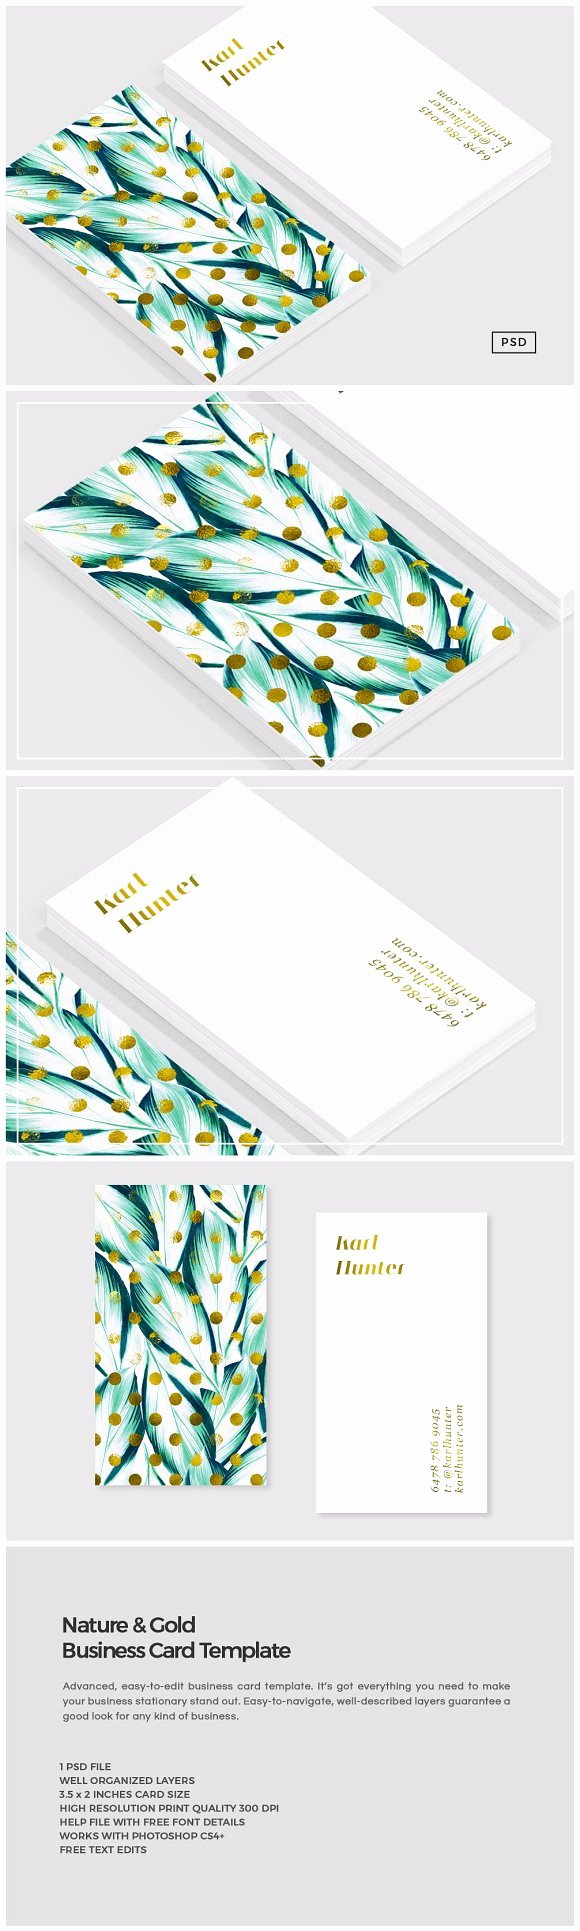 Business source Label Templates Fresh Nature & Gold Business Card Template Business Card